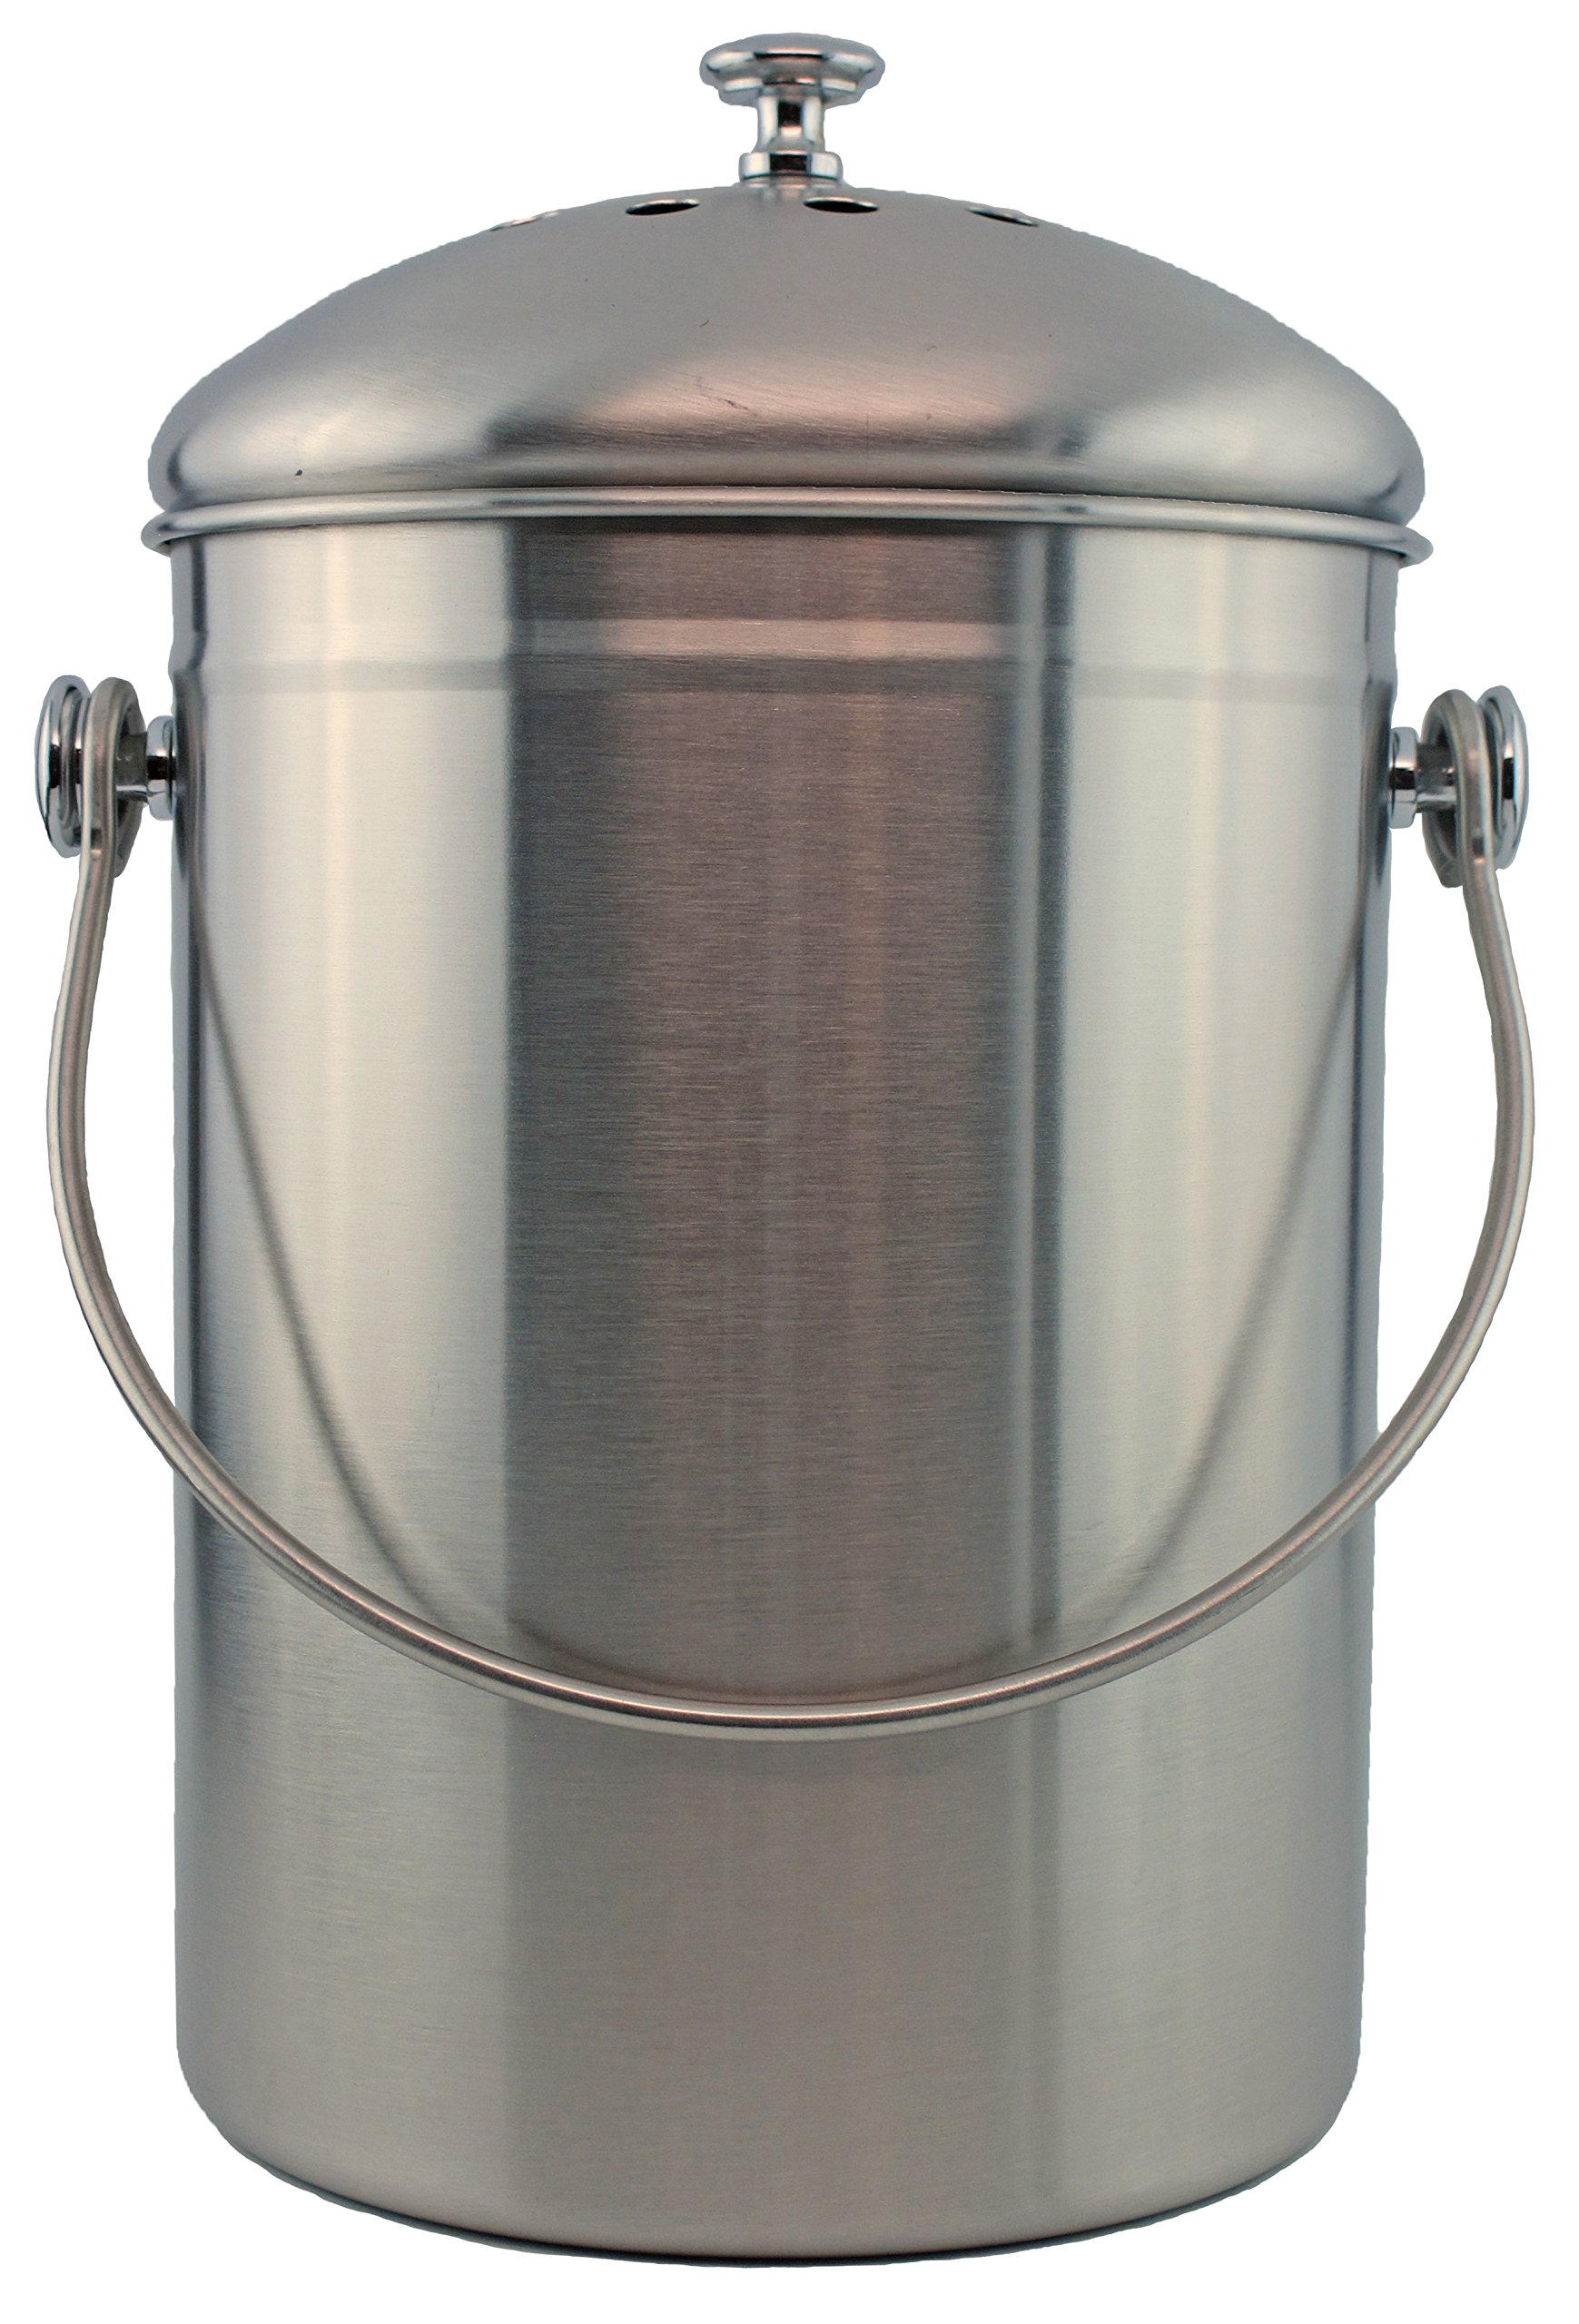 stainless steel 1 gallon compost pail with filter stainless product image